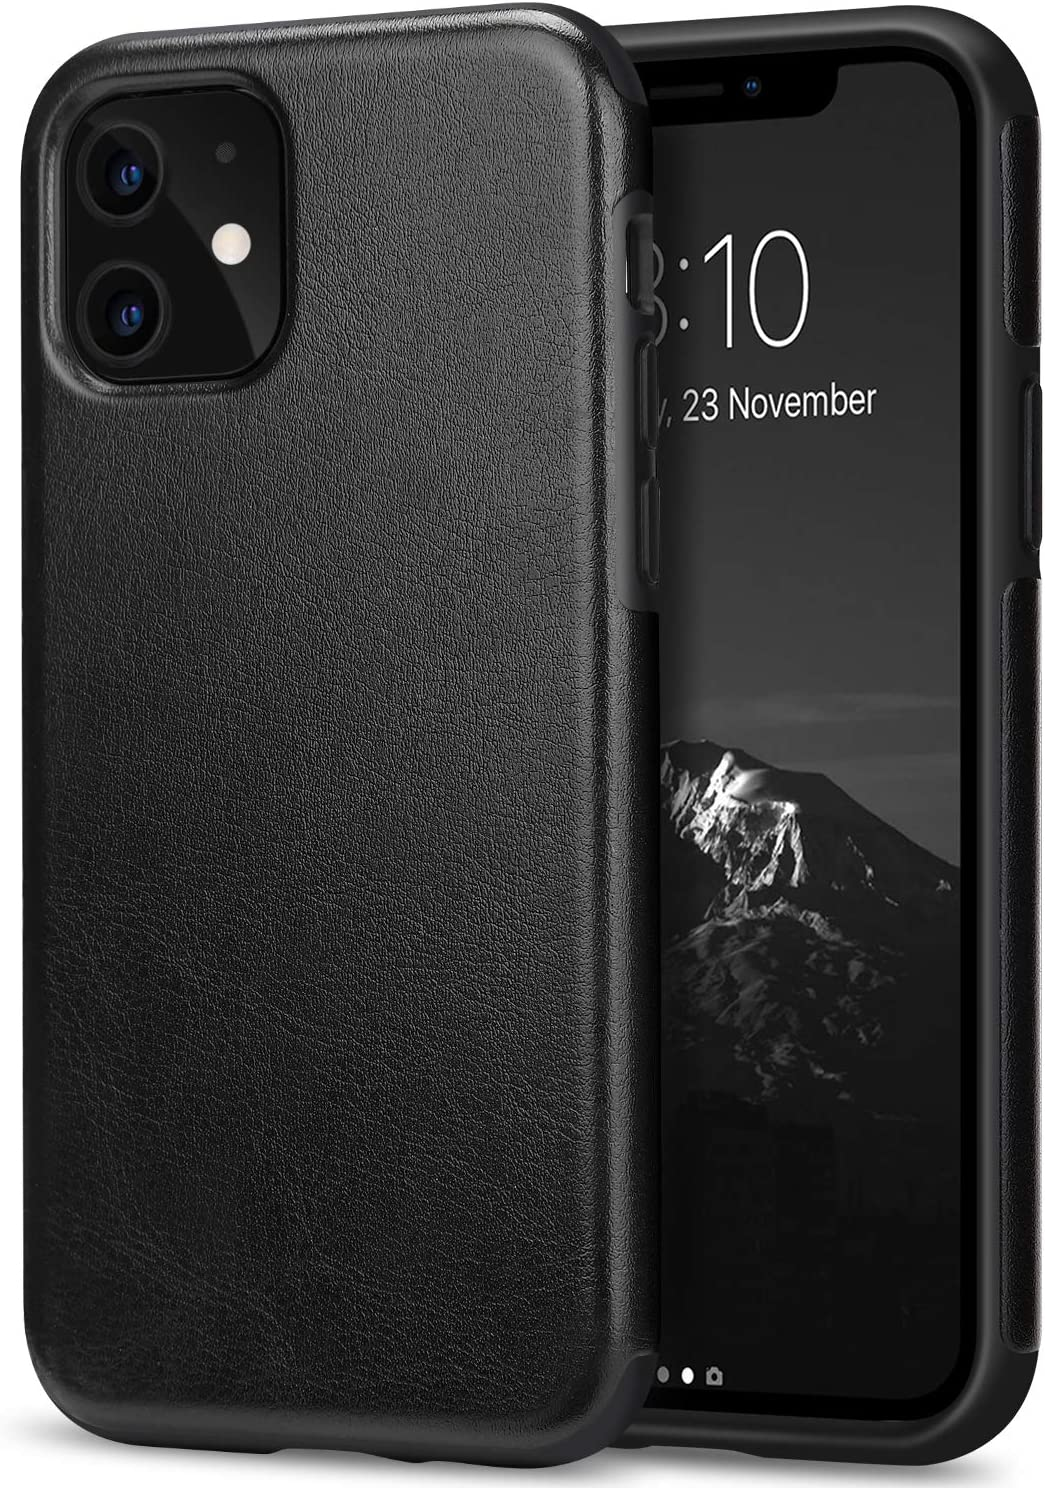 TENDLIN Funda iPhone 11 Cuero y TPU Híbrido Carcasa Compatible con iPhone 11 (Negro)